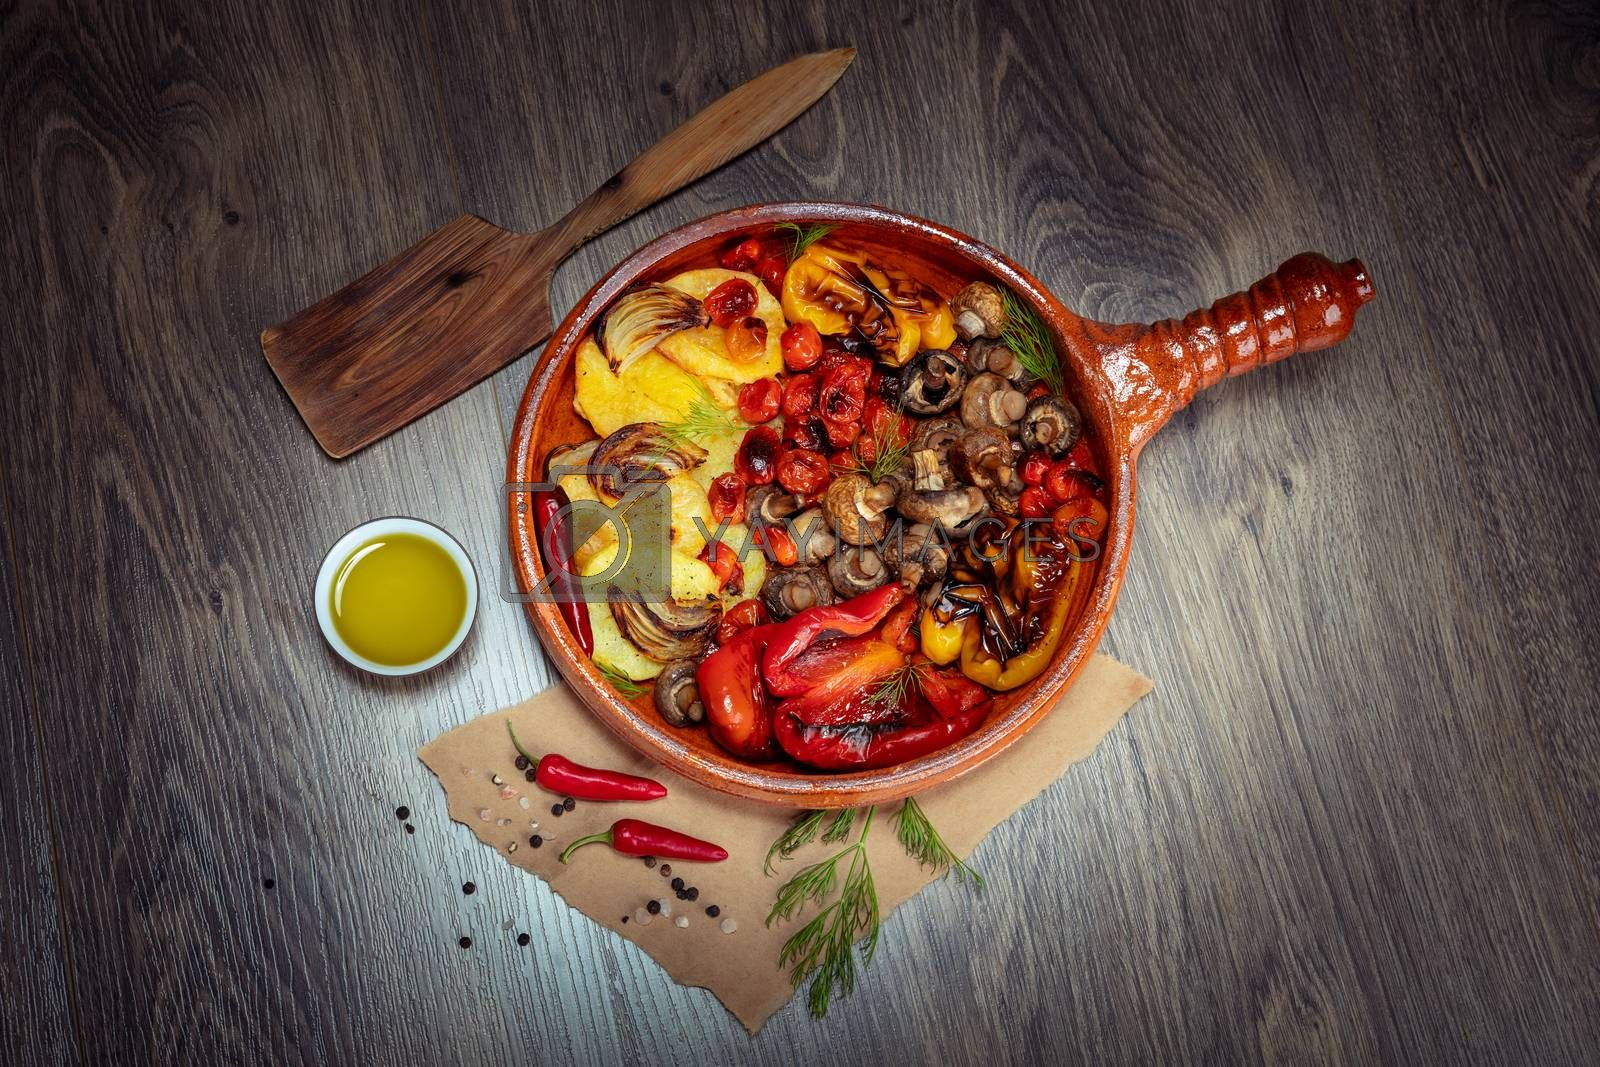 Food Flat Lay Still life on Wooden Table. Frying Pan with Delicious Grilled Vegetables. Seasonal Oven Baked Vegetables. Healthy Organic Vegetarian Dish. Diet and Weight Loss Concept.